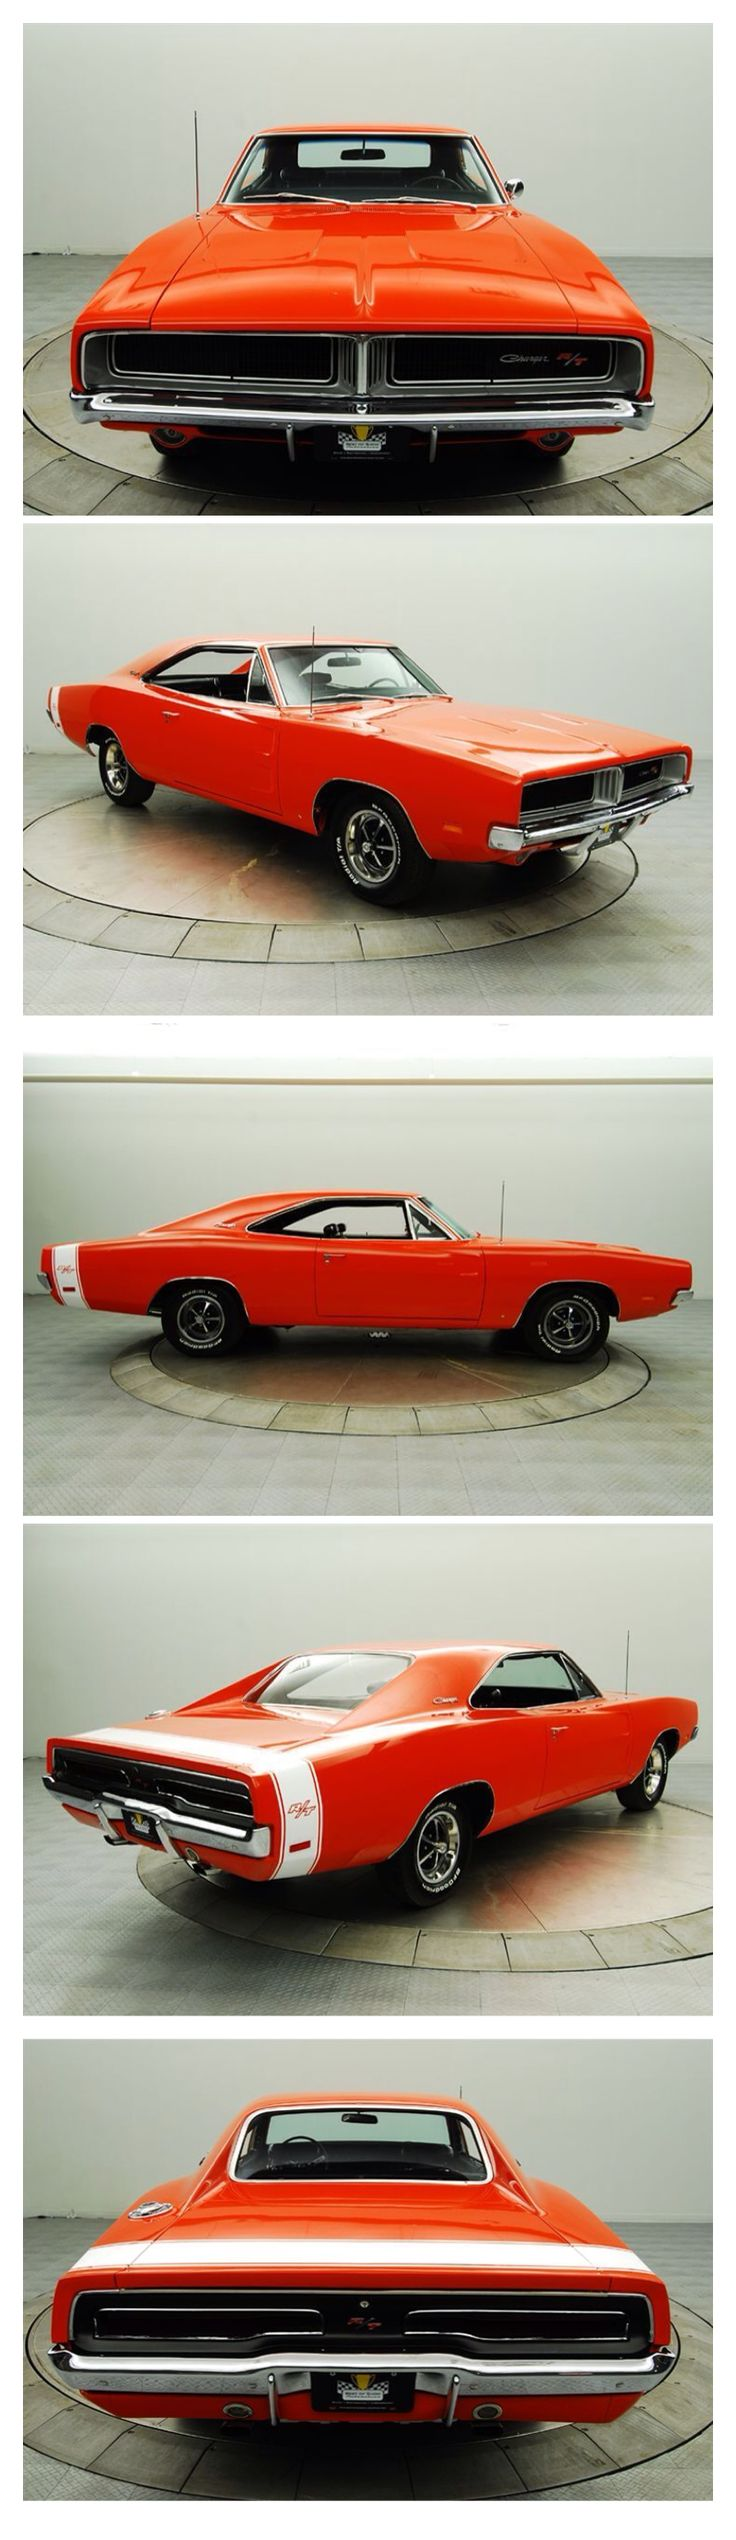 1969 Dodge Charger R/T My dad has a 2011 Dodge Charger and wow it looks way different